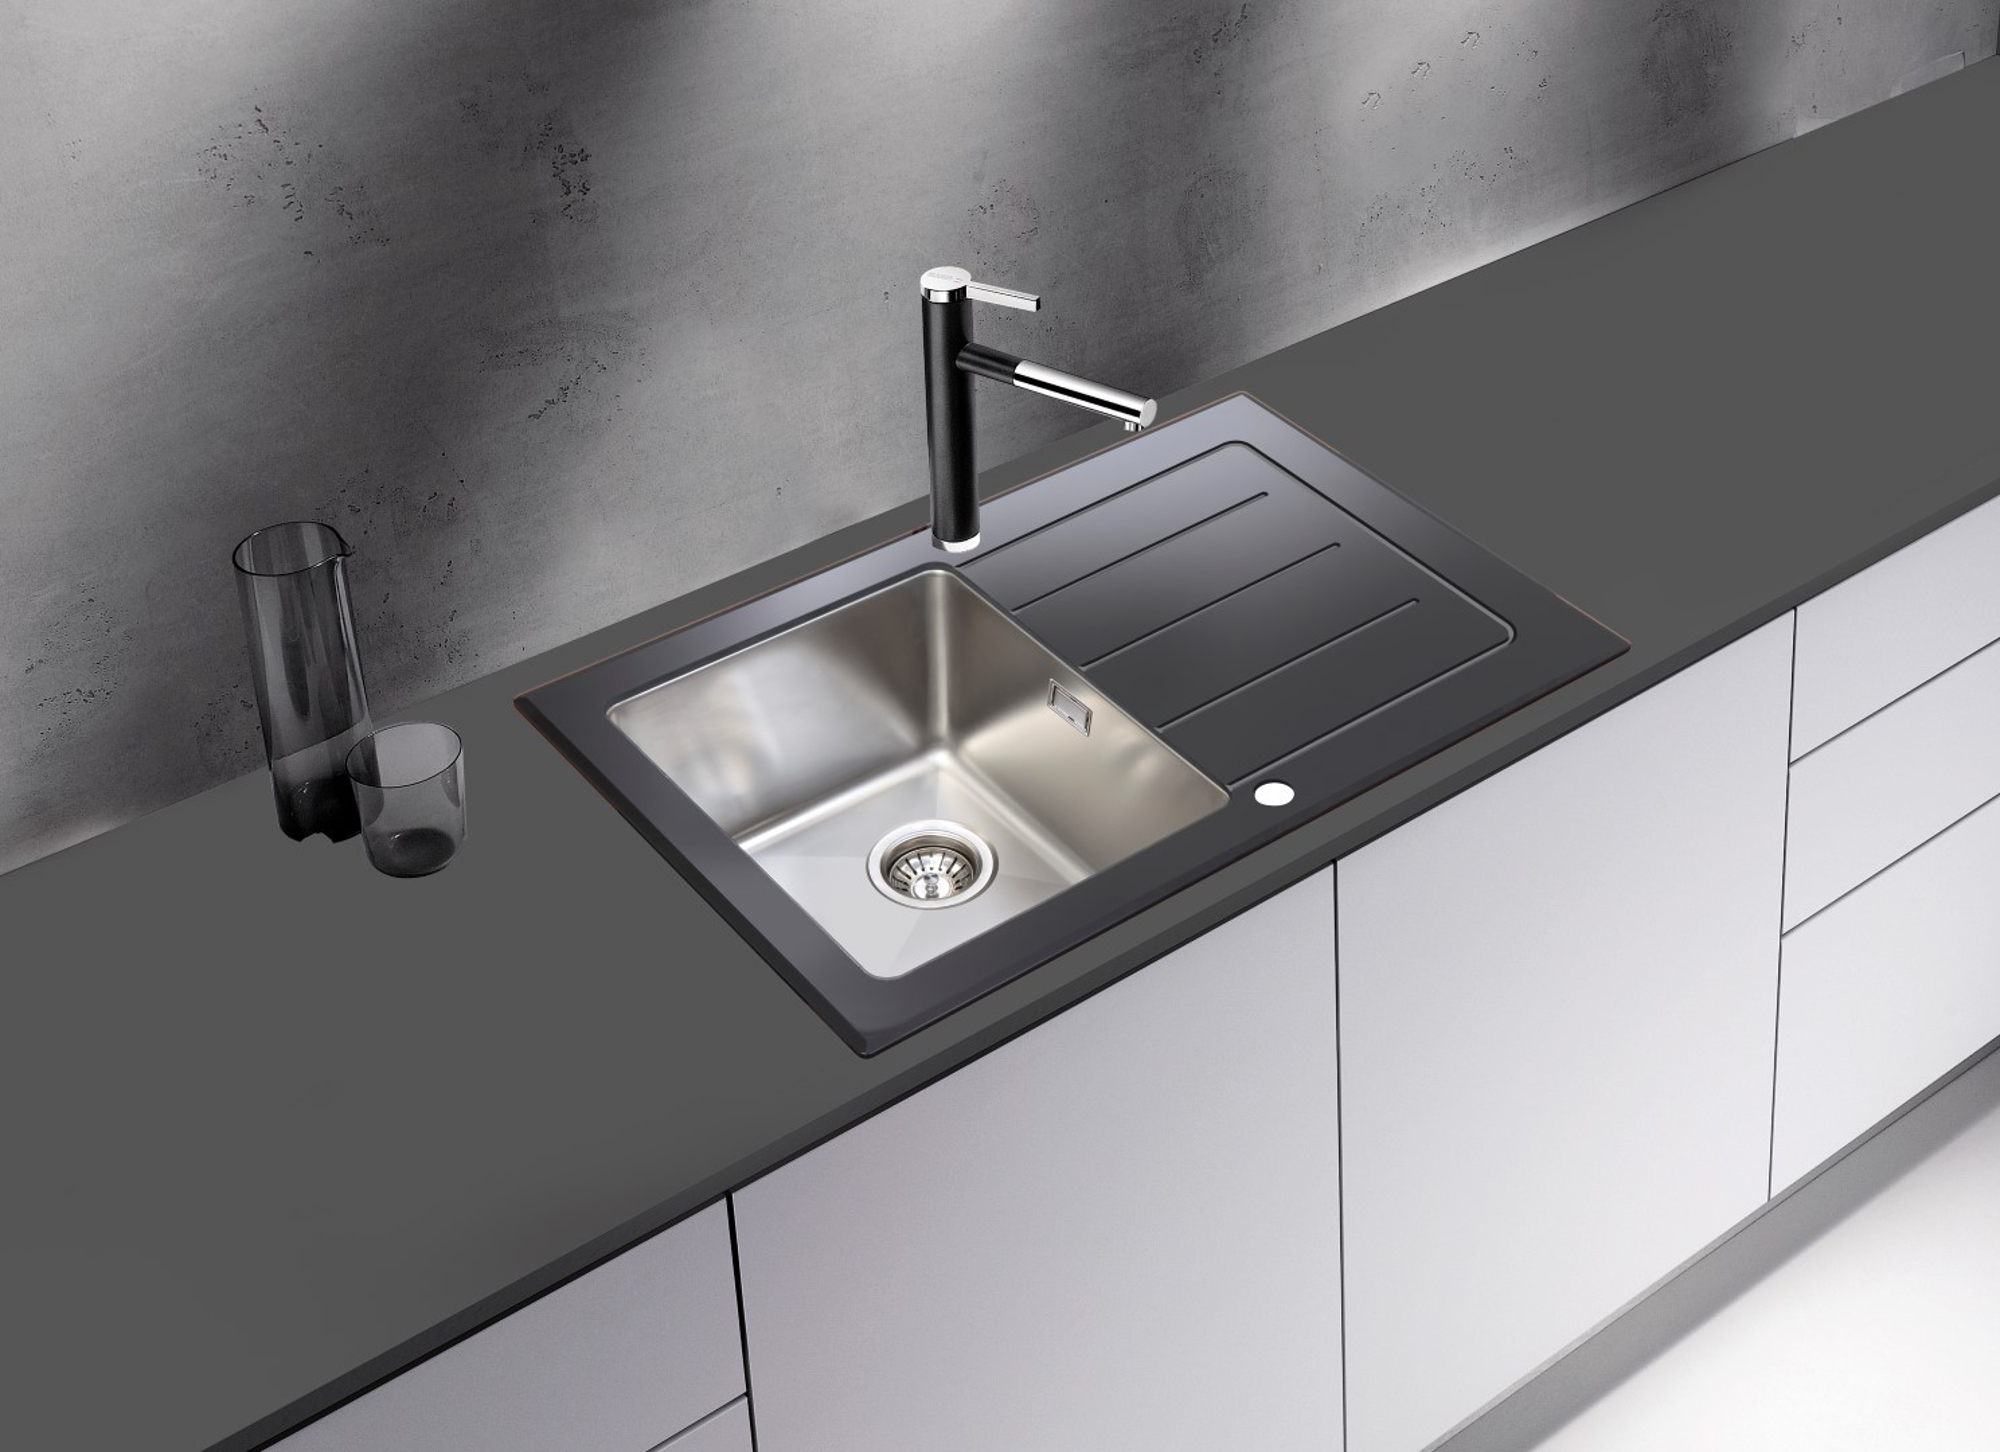 Glass Sink Unit : Details about respekta Glass sink Unit, Built-in New York 86x50 black ...